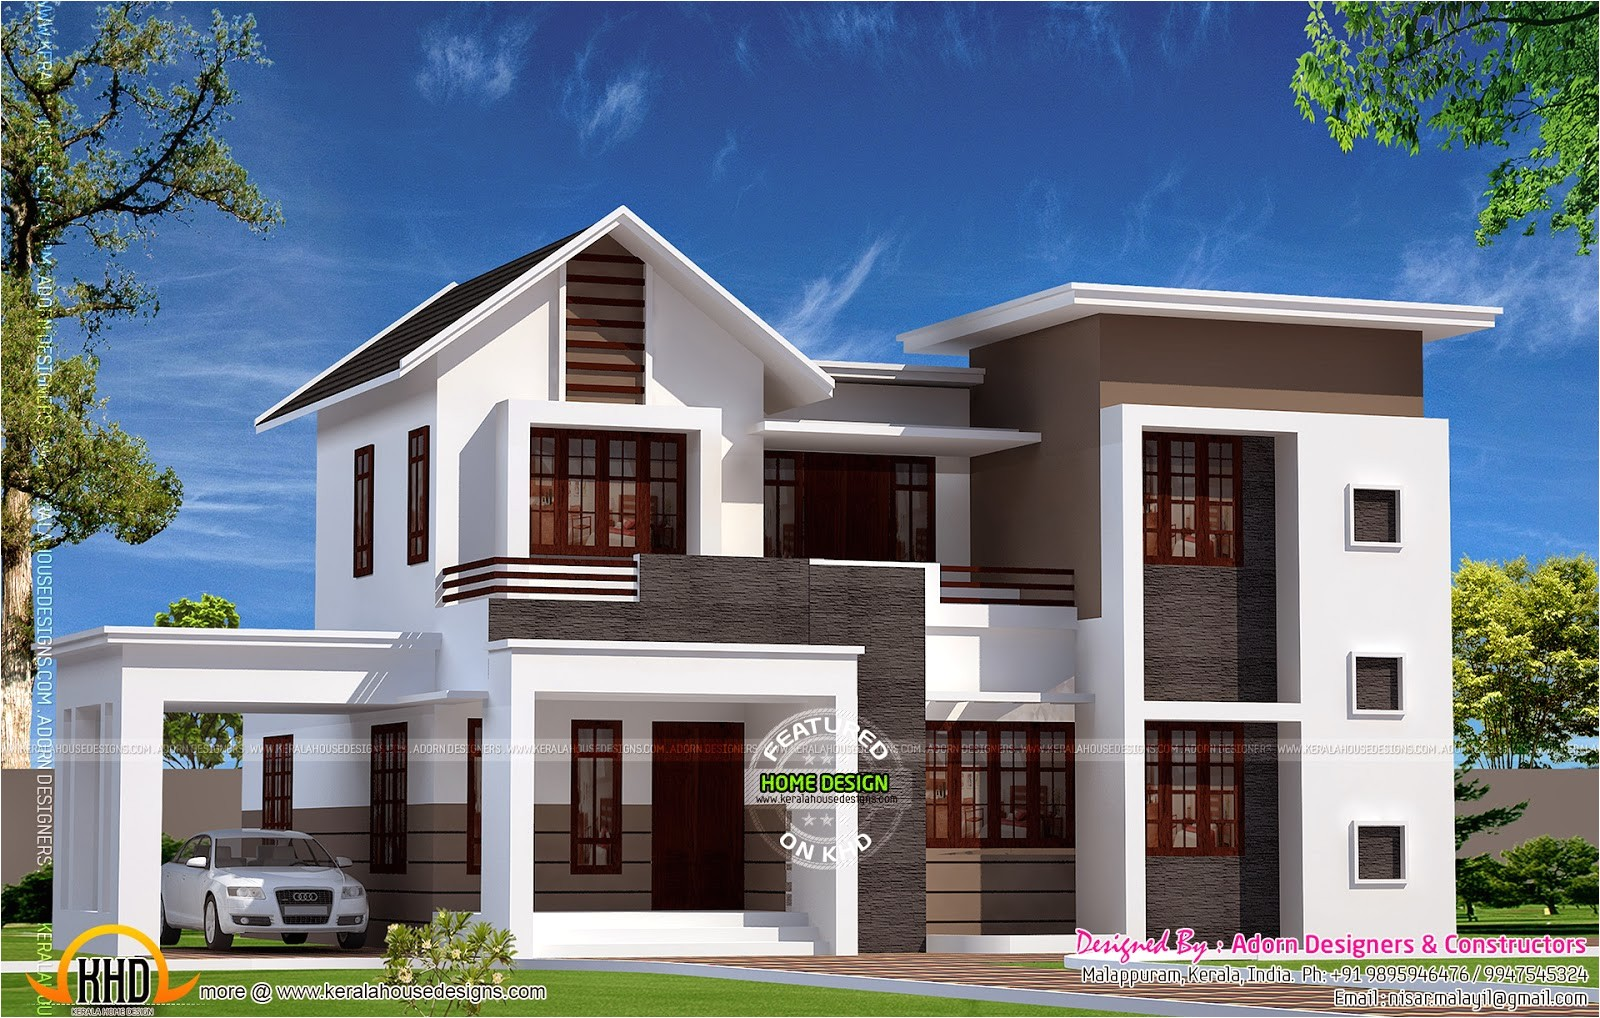 Best New Home Plans Stunning American Home Design Reviews Photos Decoration